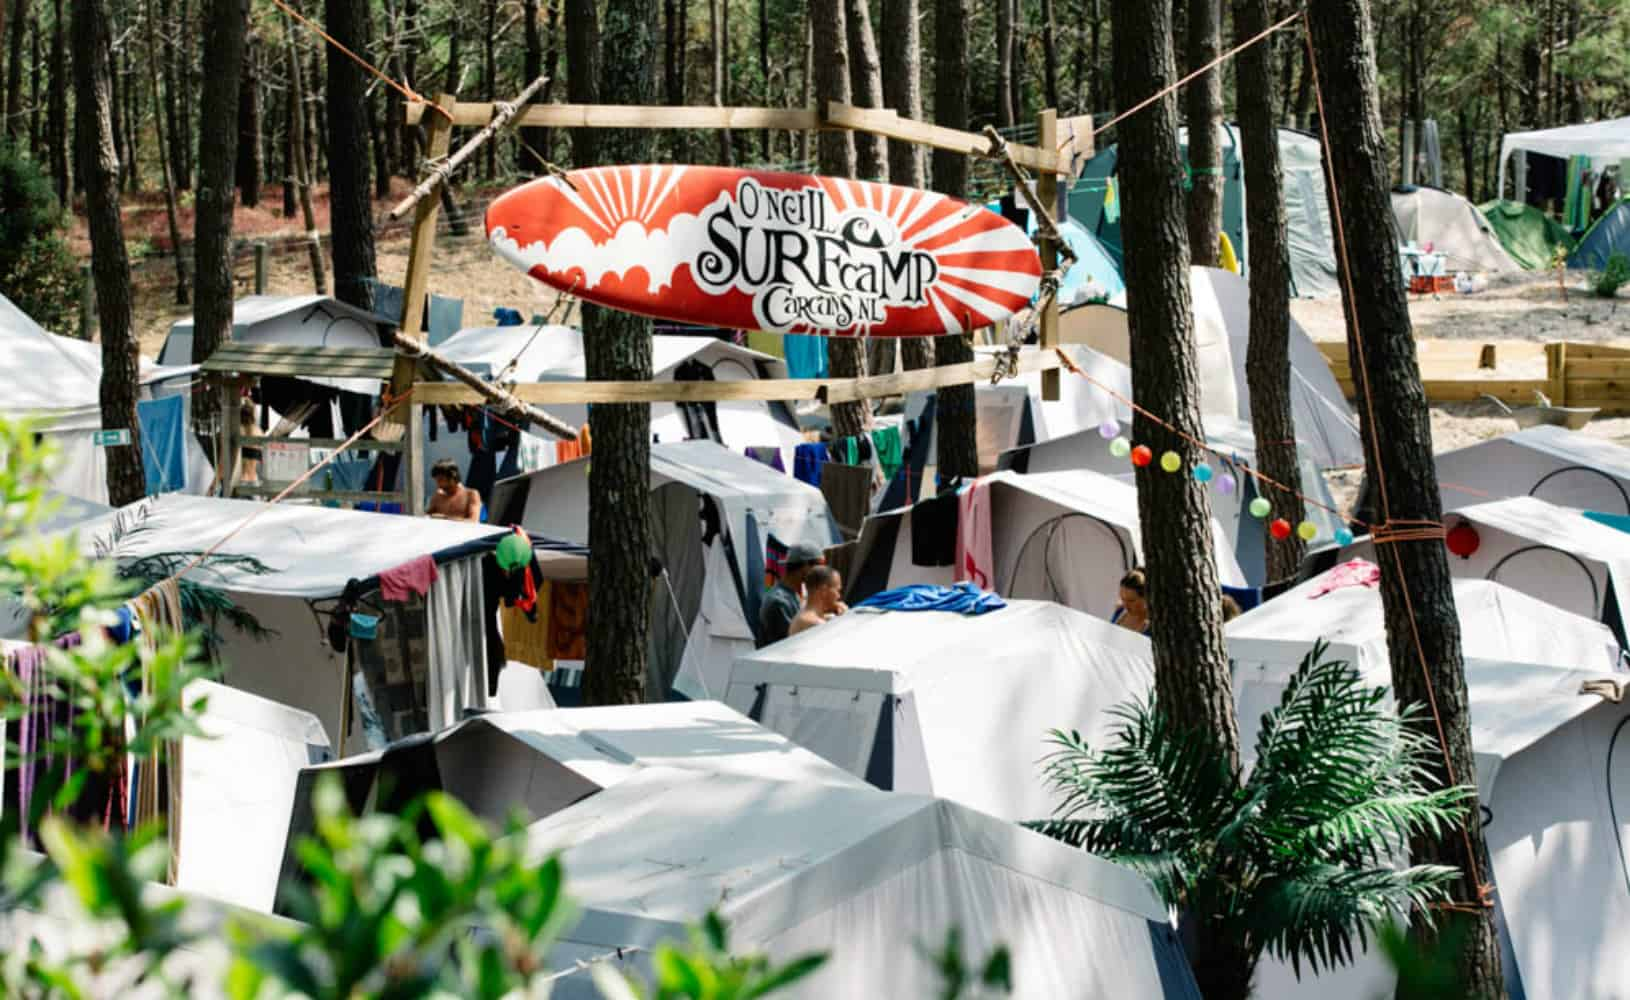 France O'Neill Surflife Carcans Camp overview